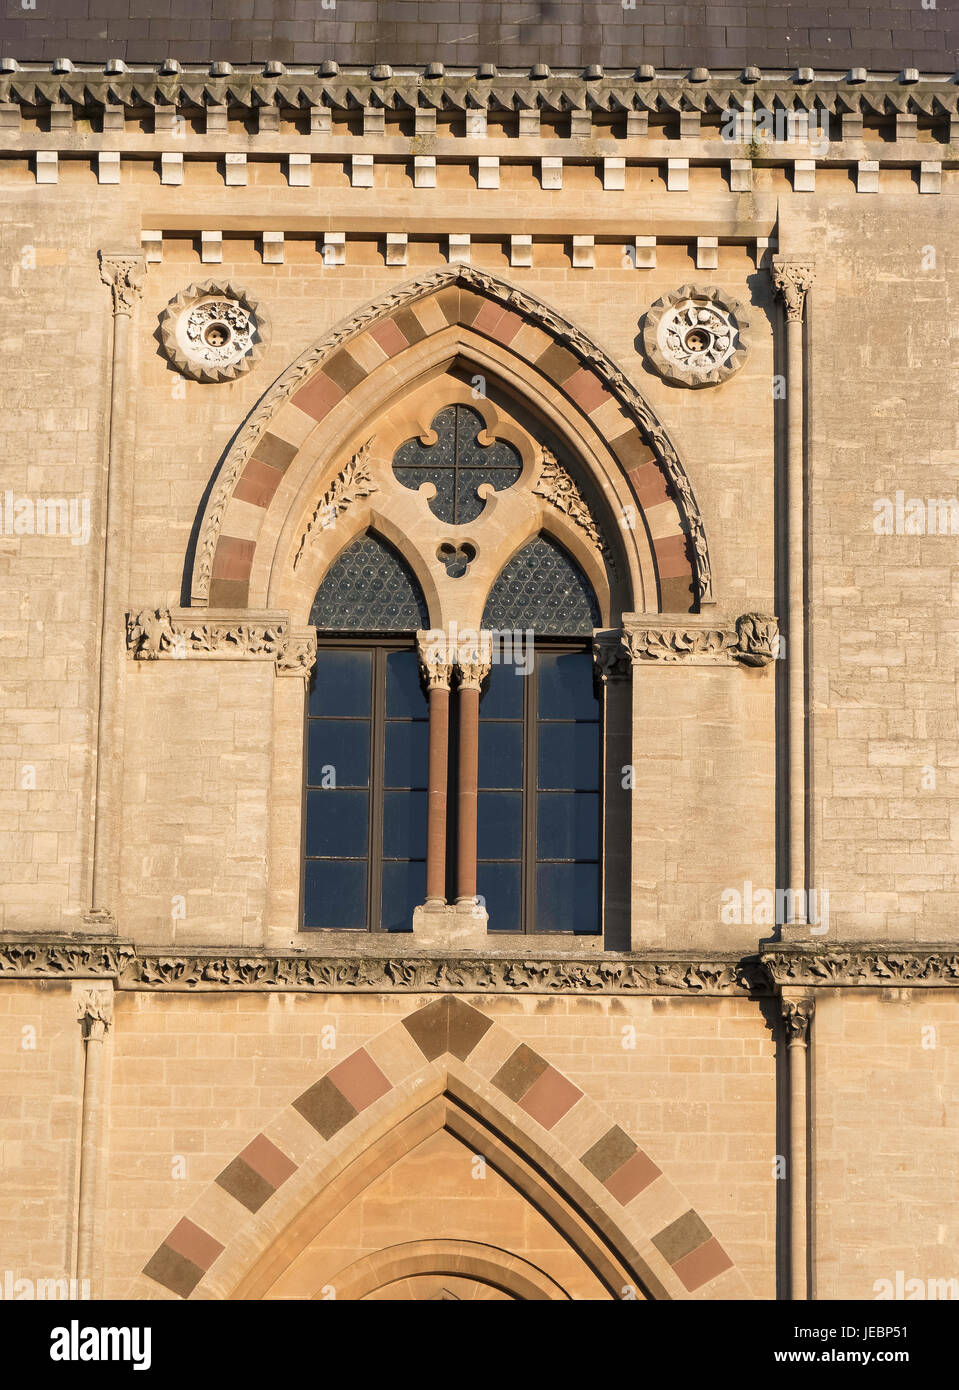 Gothic style window of Oxford University Museum of Natural History, Oxford, England, UK - Stock Image